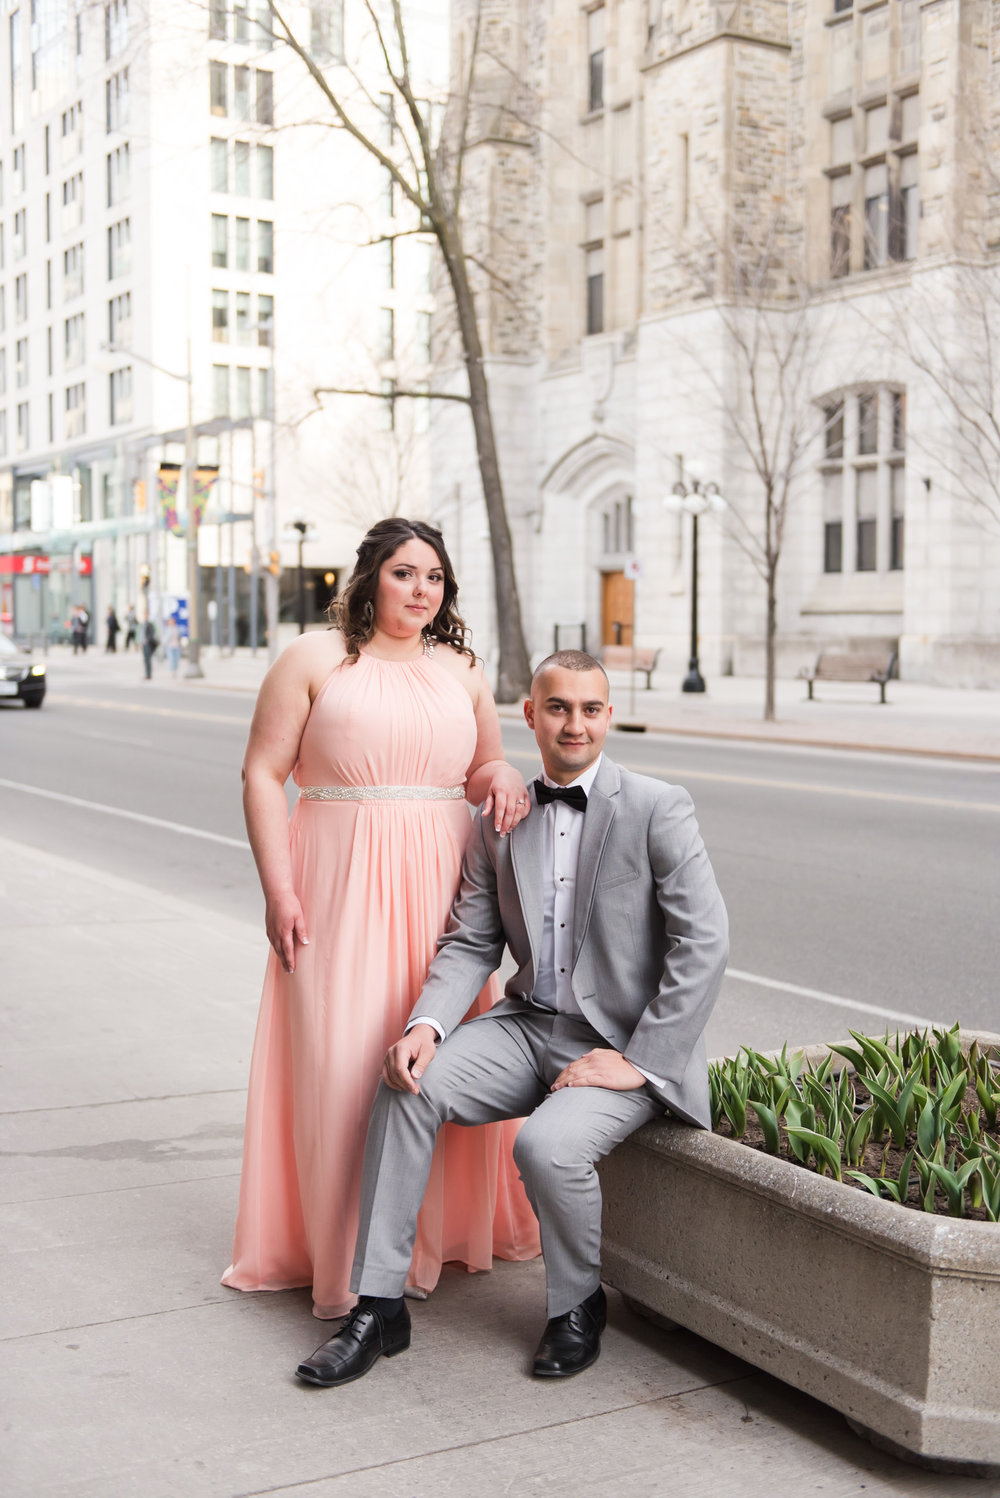 5 Tips to Prepare for your Engagement Shoot - Ottawa Wedding Photographer